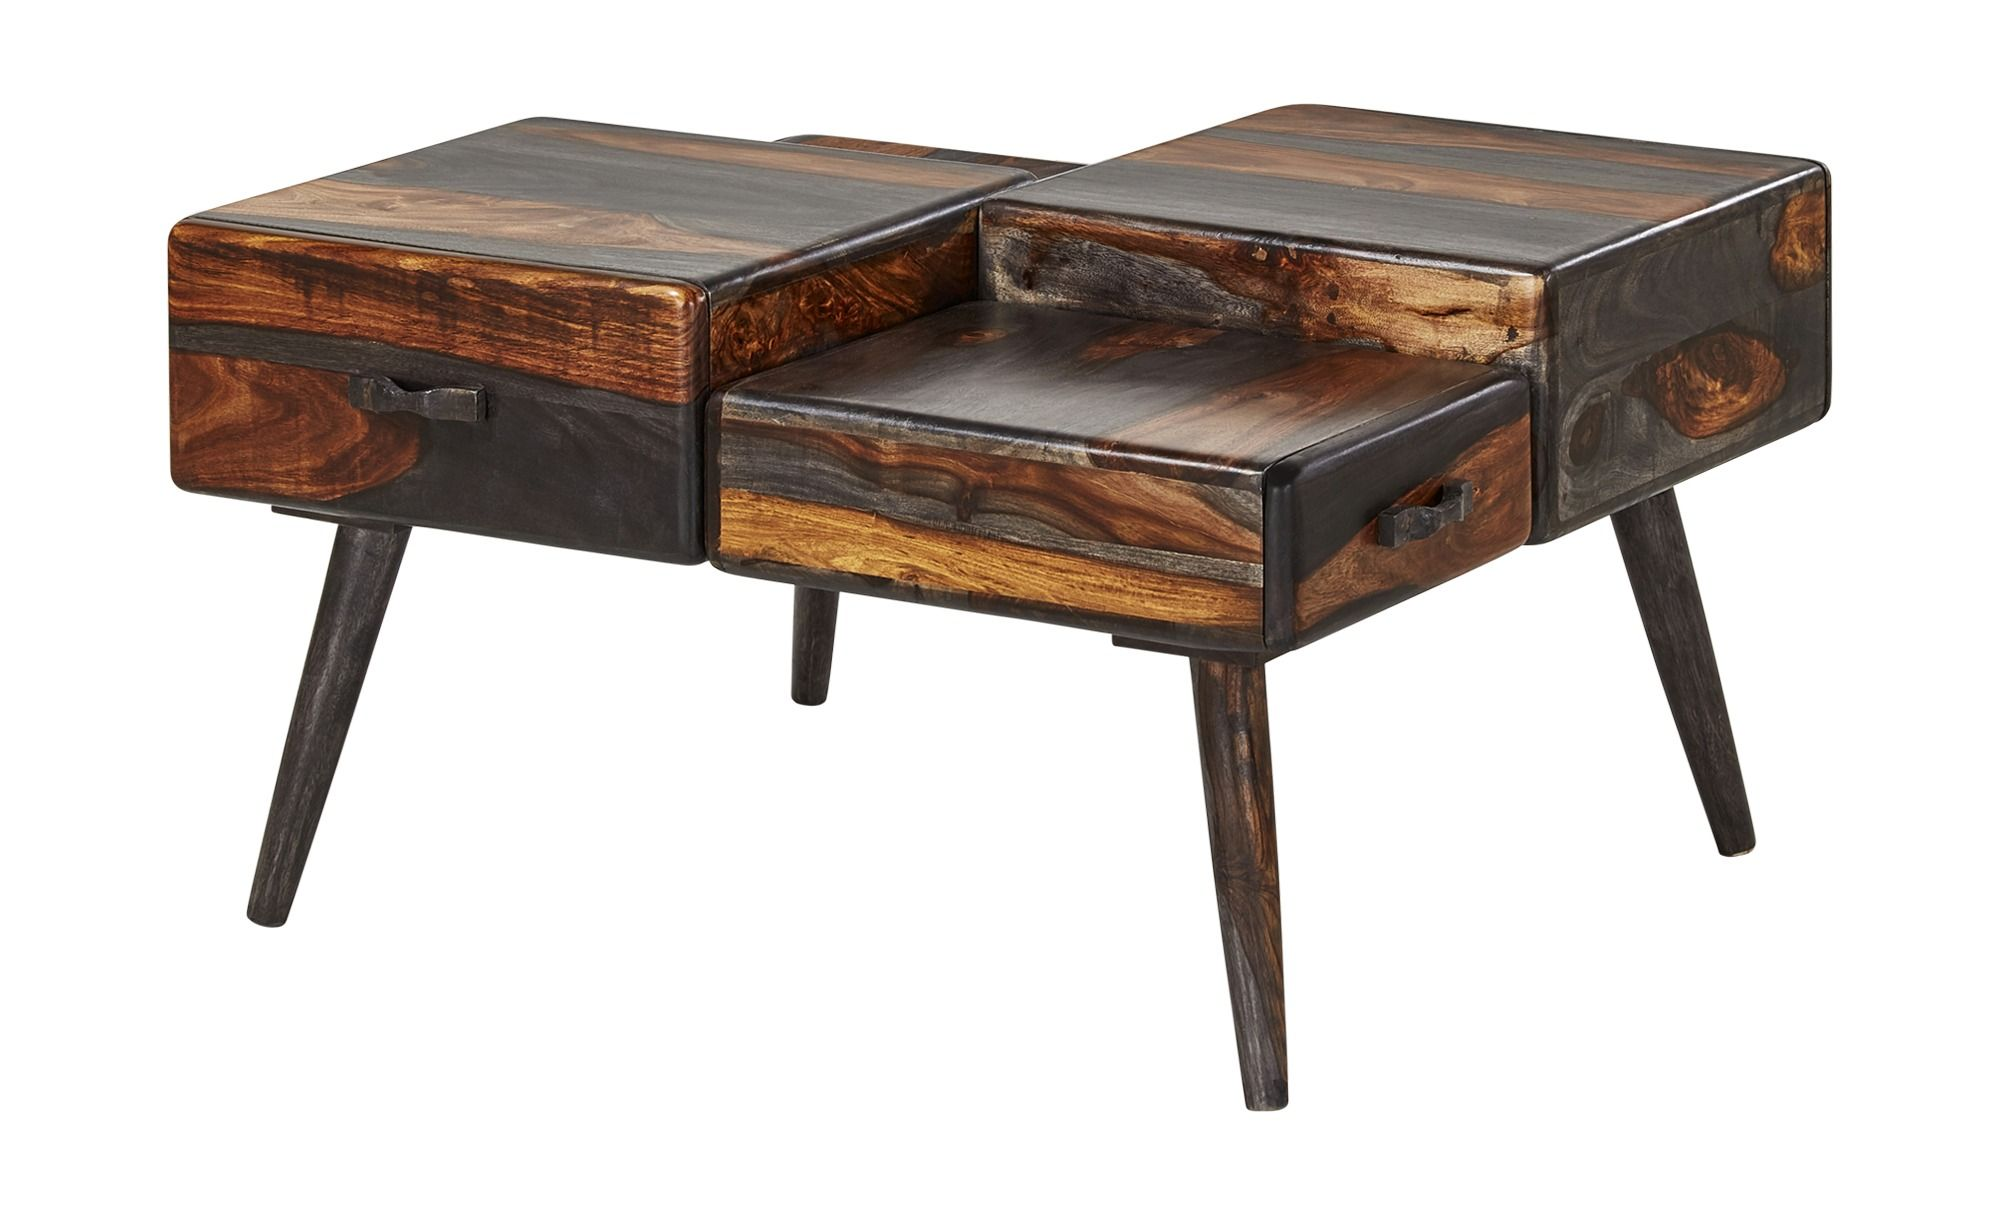 Pin By Ladendirekt On Tische Furniture Home Decor Table